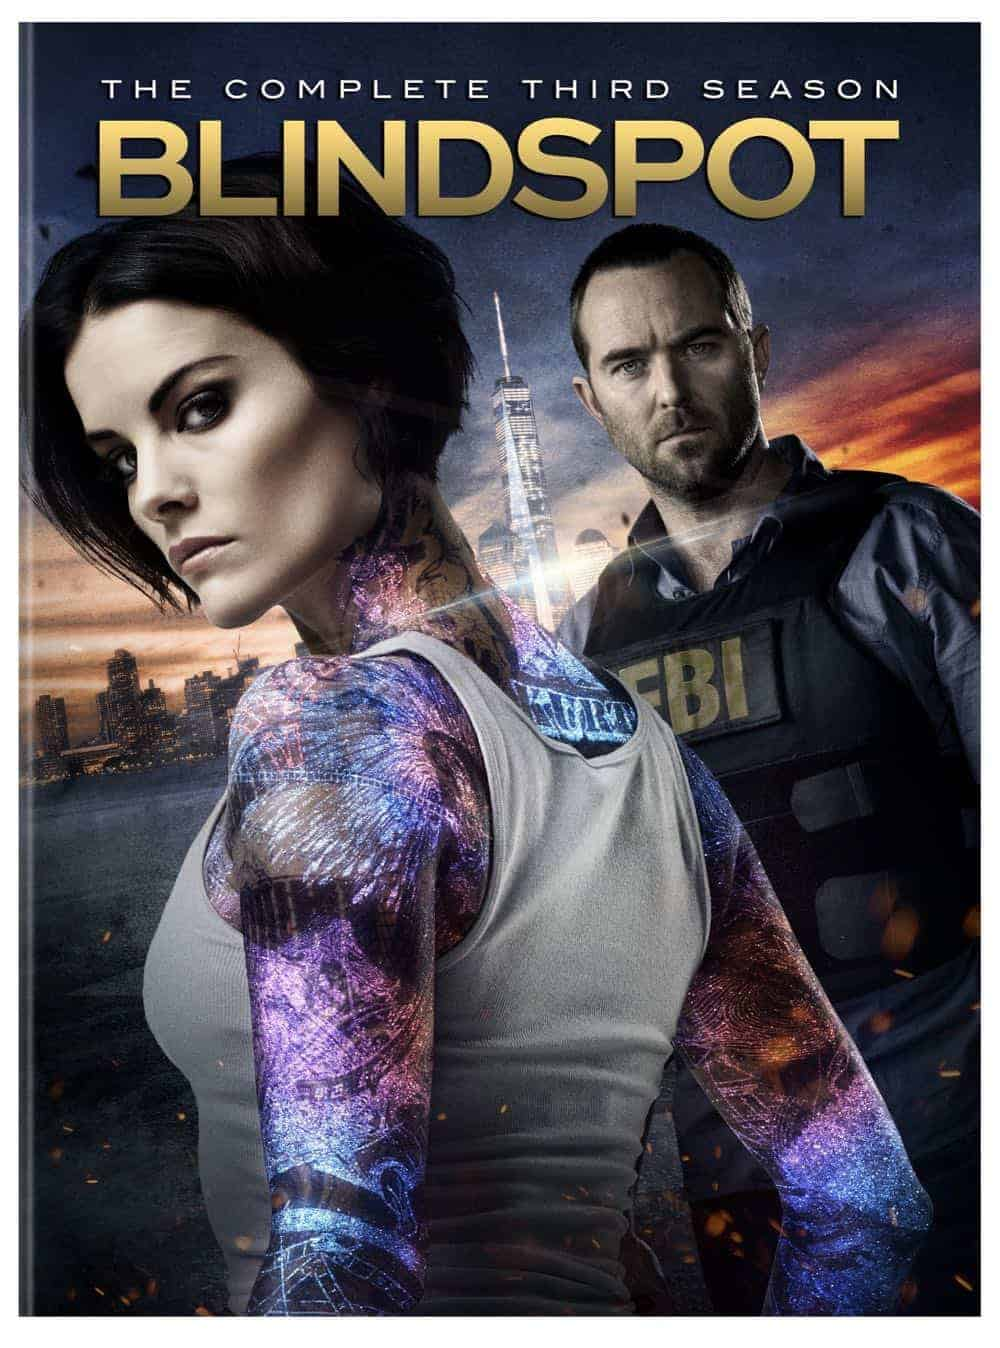 Blindspot Season 3 DVD Box Cover Artwork